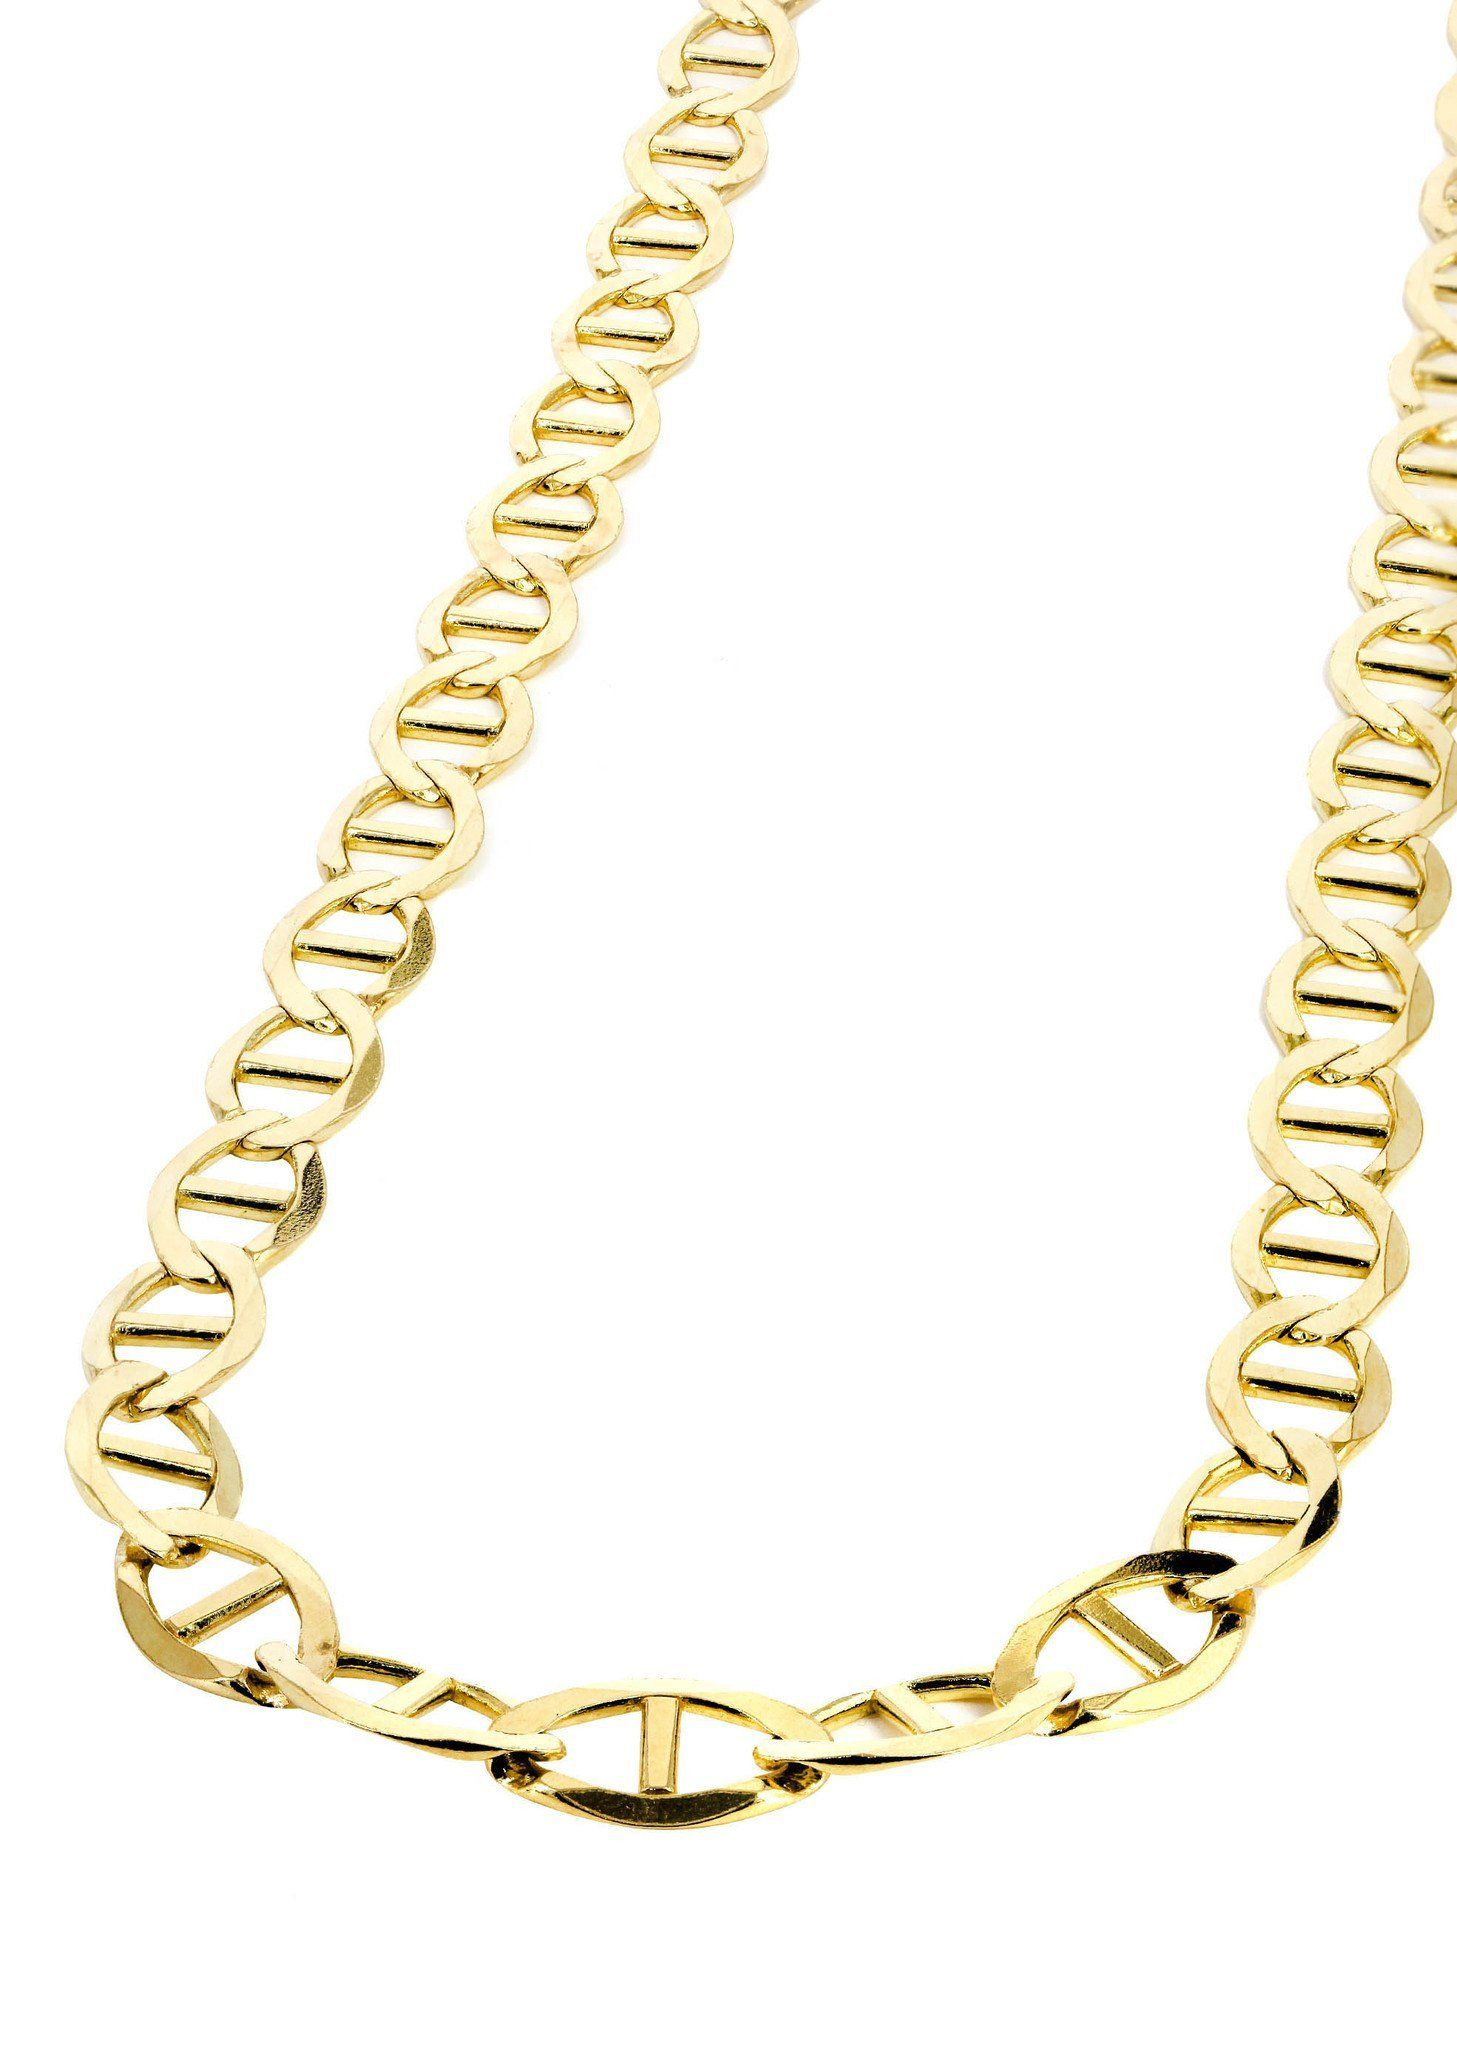 Gold Chain Mens Solid Mariner Chain 10k Gold Real Gold Chains Gold Chains For Men 10k Gold Chain